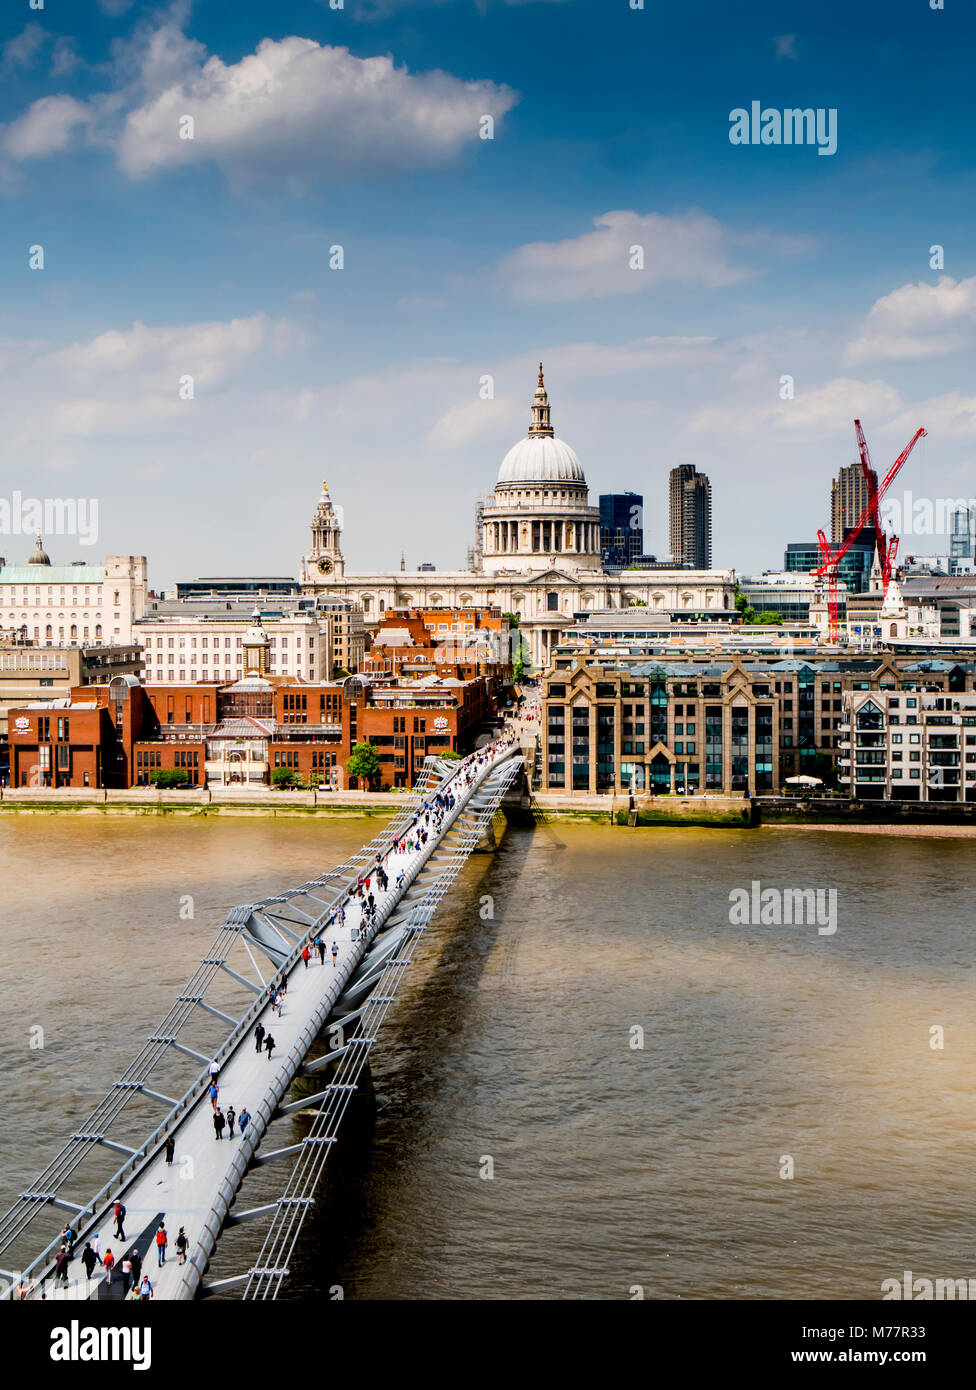 St. Paul's Cathedral and Millennium Bridge from the Tate Gallery, London, England, United Kingdom, Europe - Stock Image